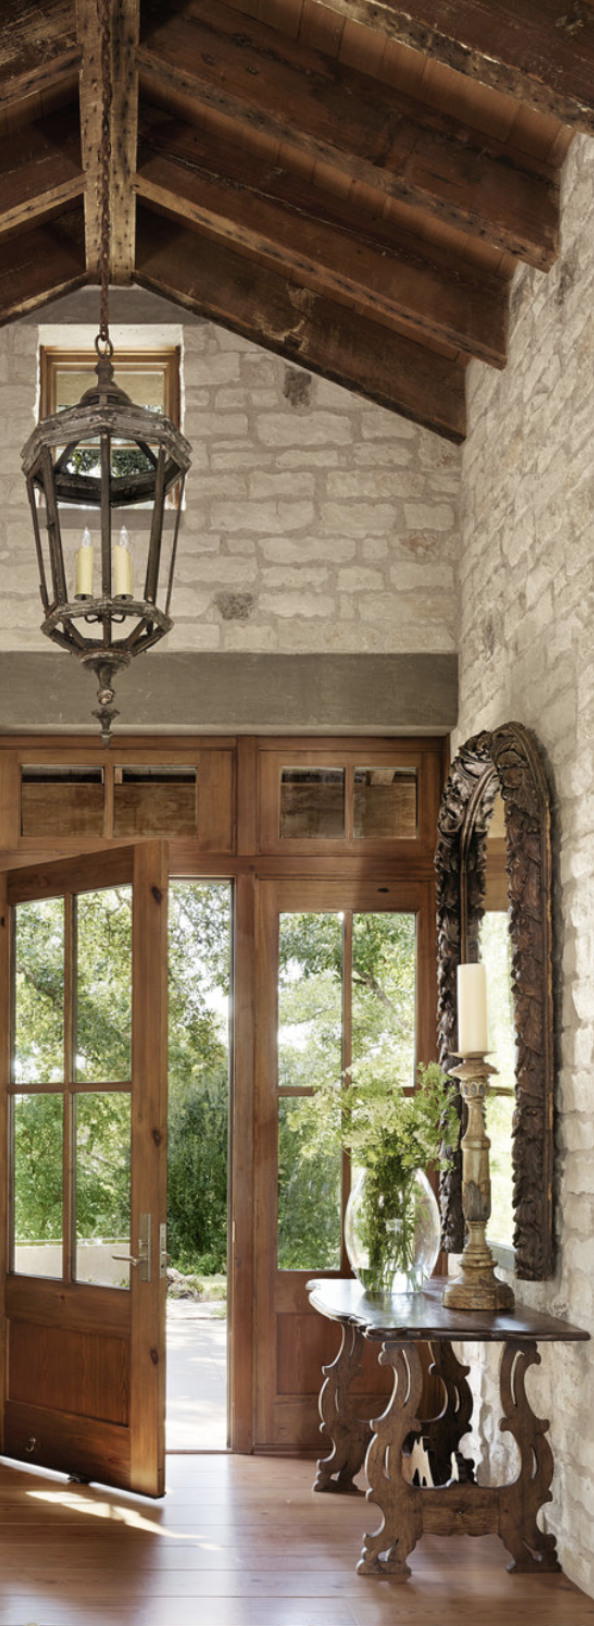 Rustic Entry Foyer Lighting : Rustic elegance foyer with vault wood beams french